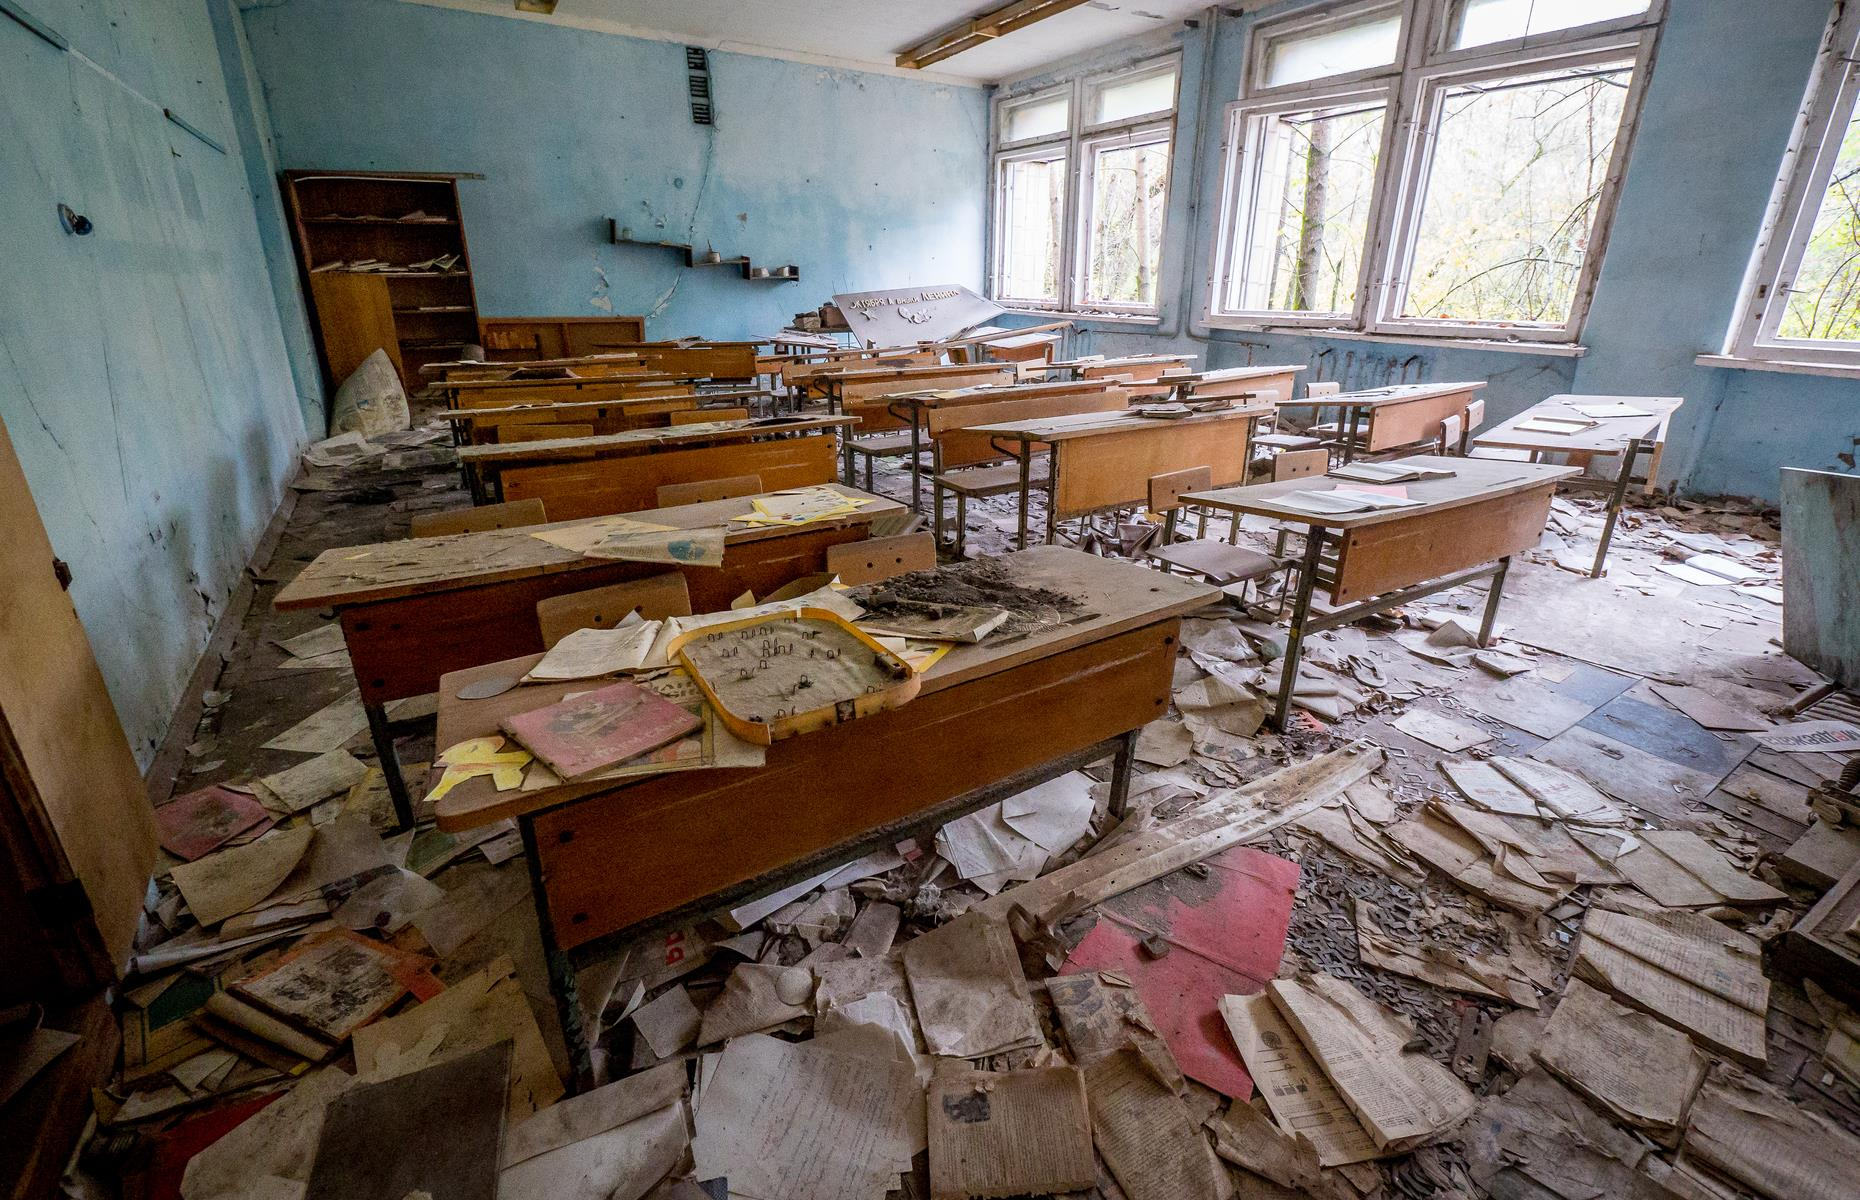 Slide 47 of 51: In the deserted school near the Chernobyl power plant, books and paper are scattered on the floor of the classrooms. Inhabitants of the evacuated area had to leave everything behind due to the radiation. More than 30 years on it leaves visitors with an eerie feeling.